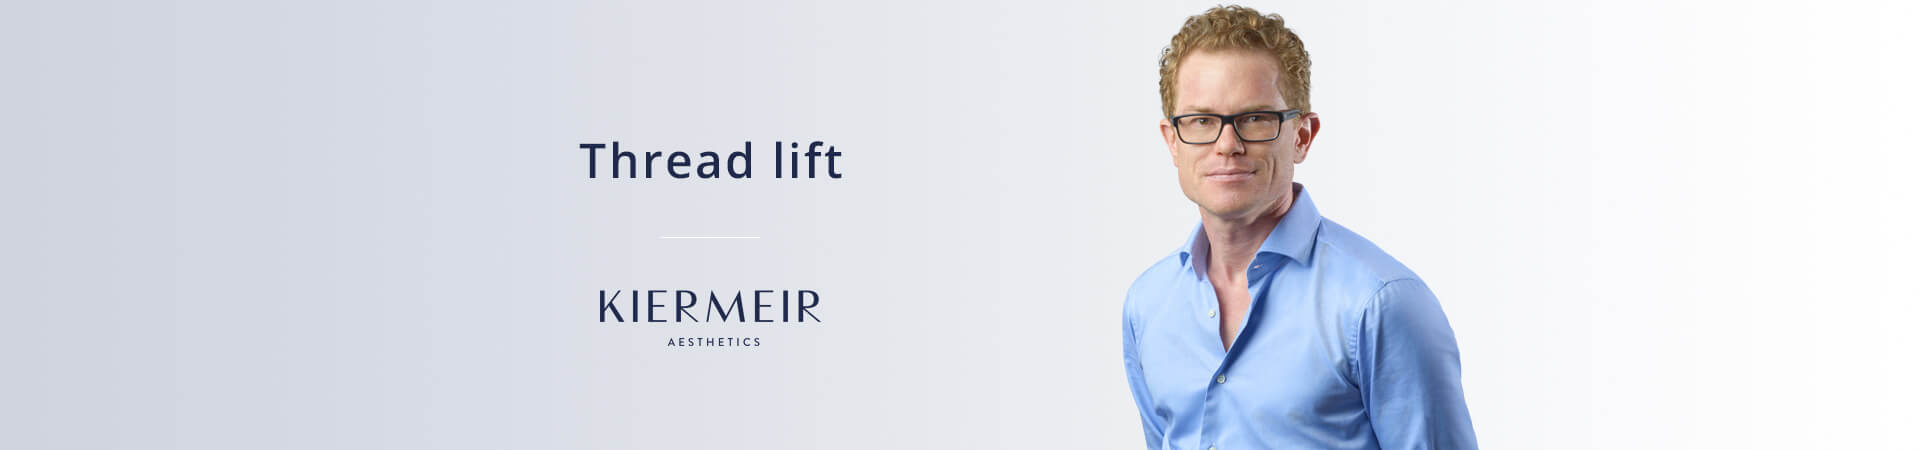 Thread Lift in Bern by Dr. Kiermeir